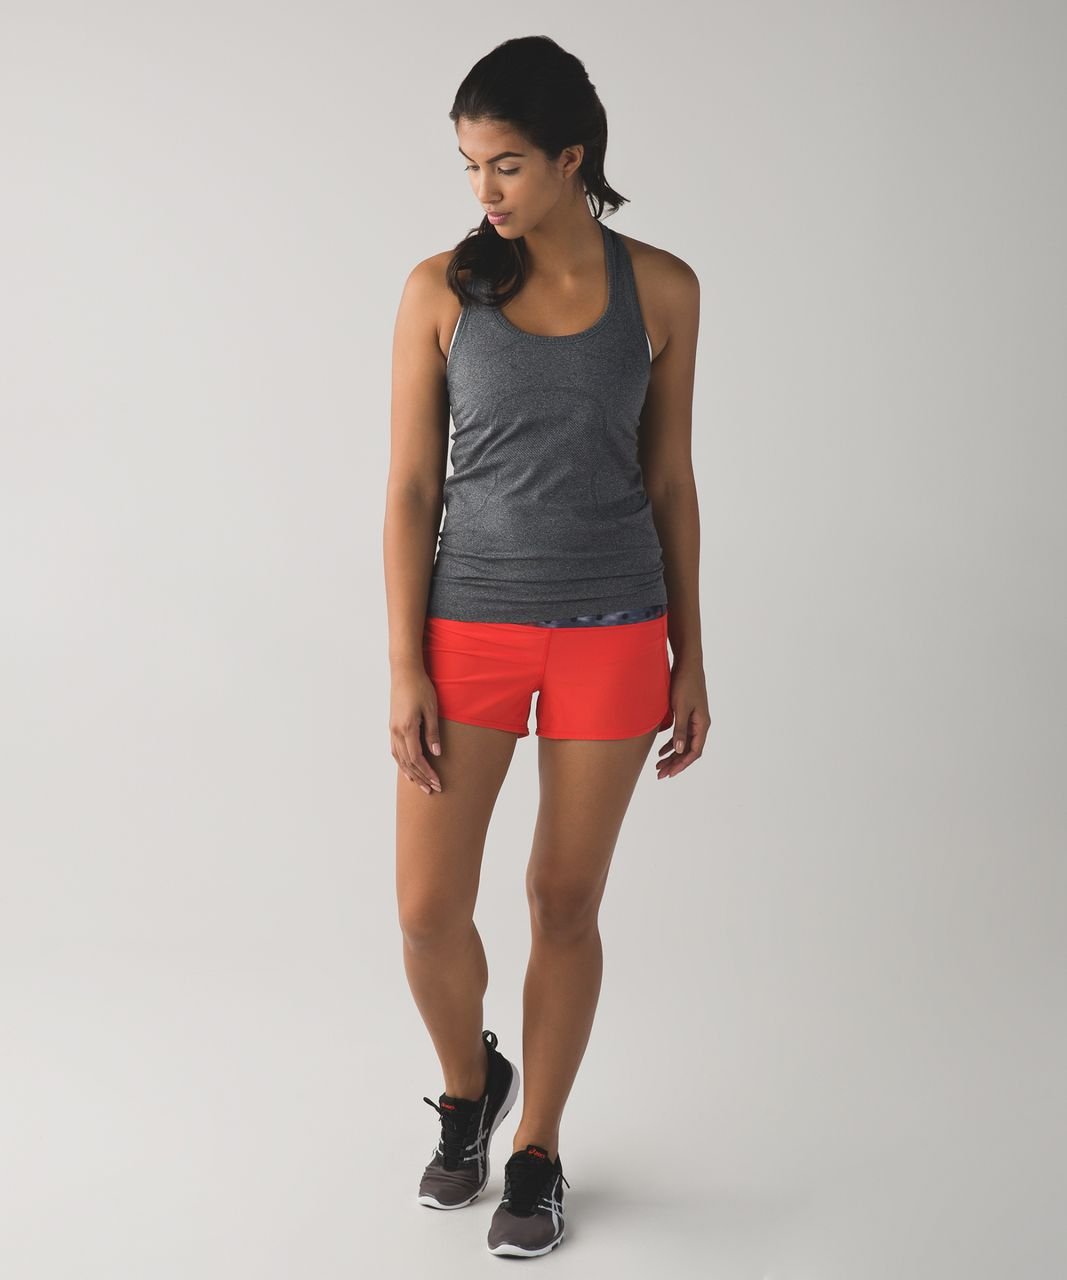 Lululemon Speed Short - Alarming / Windy Blooms Regal Plum Multi